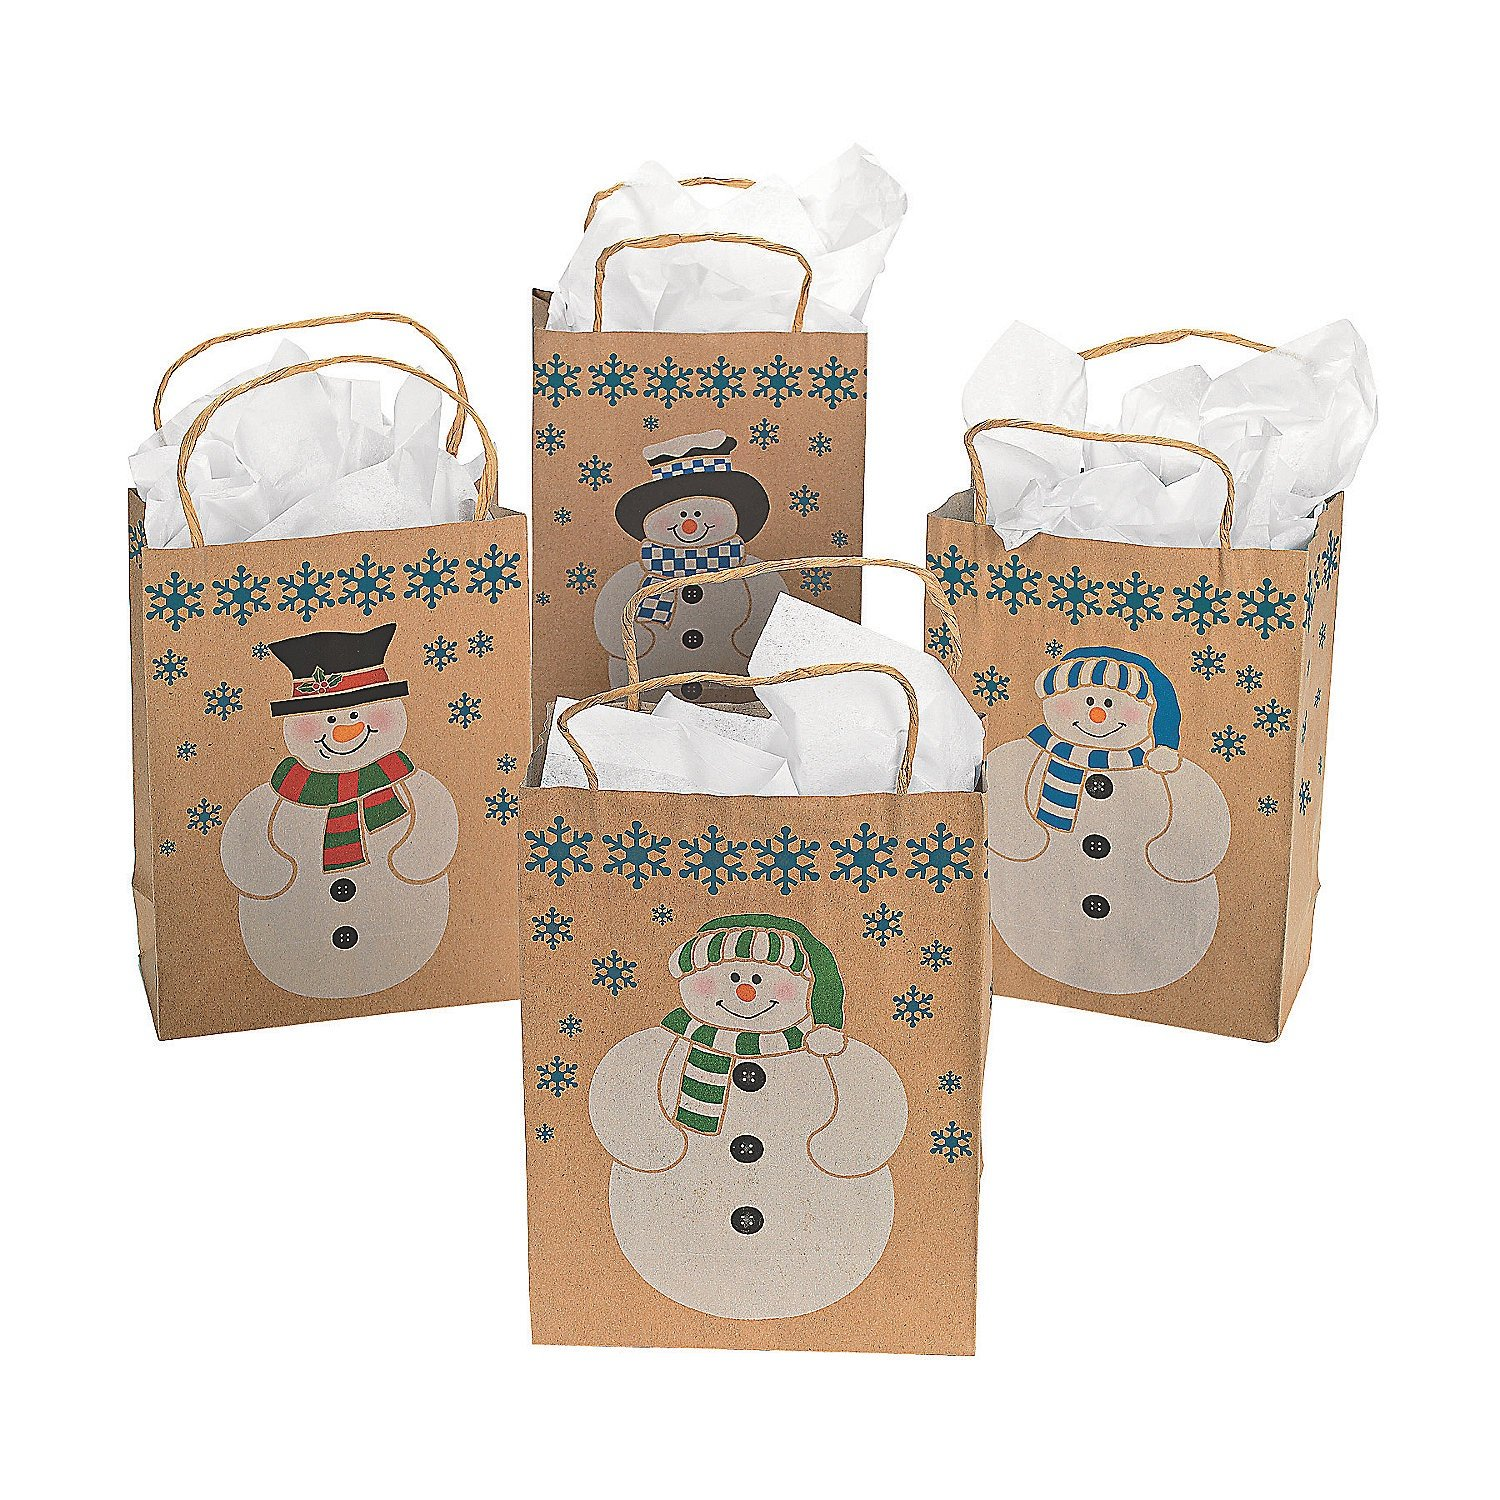 12 snowman gift bags w jute cord handles christmas holiday for Handles for bags craft